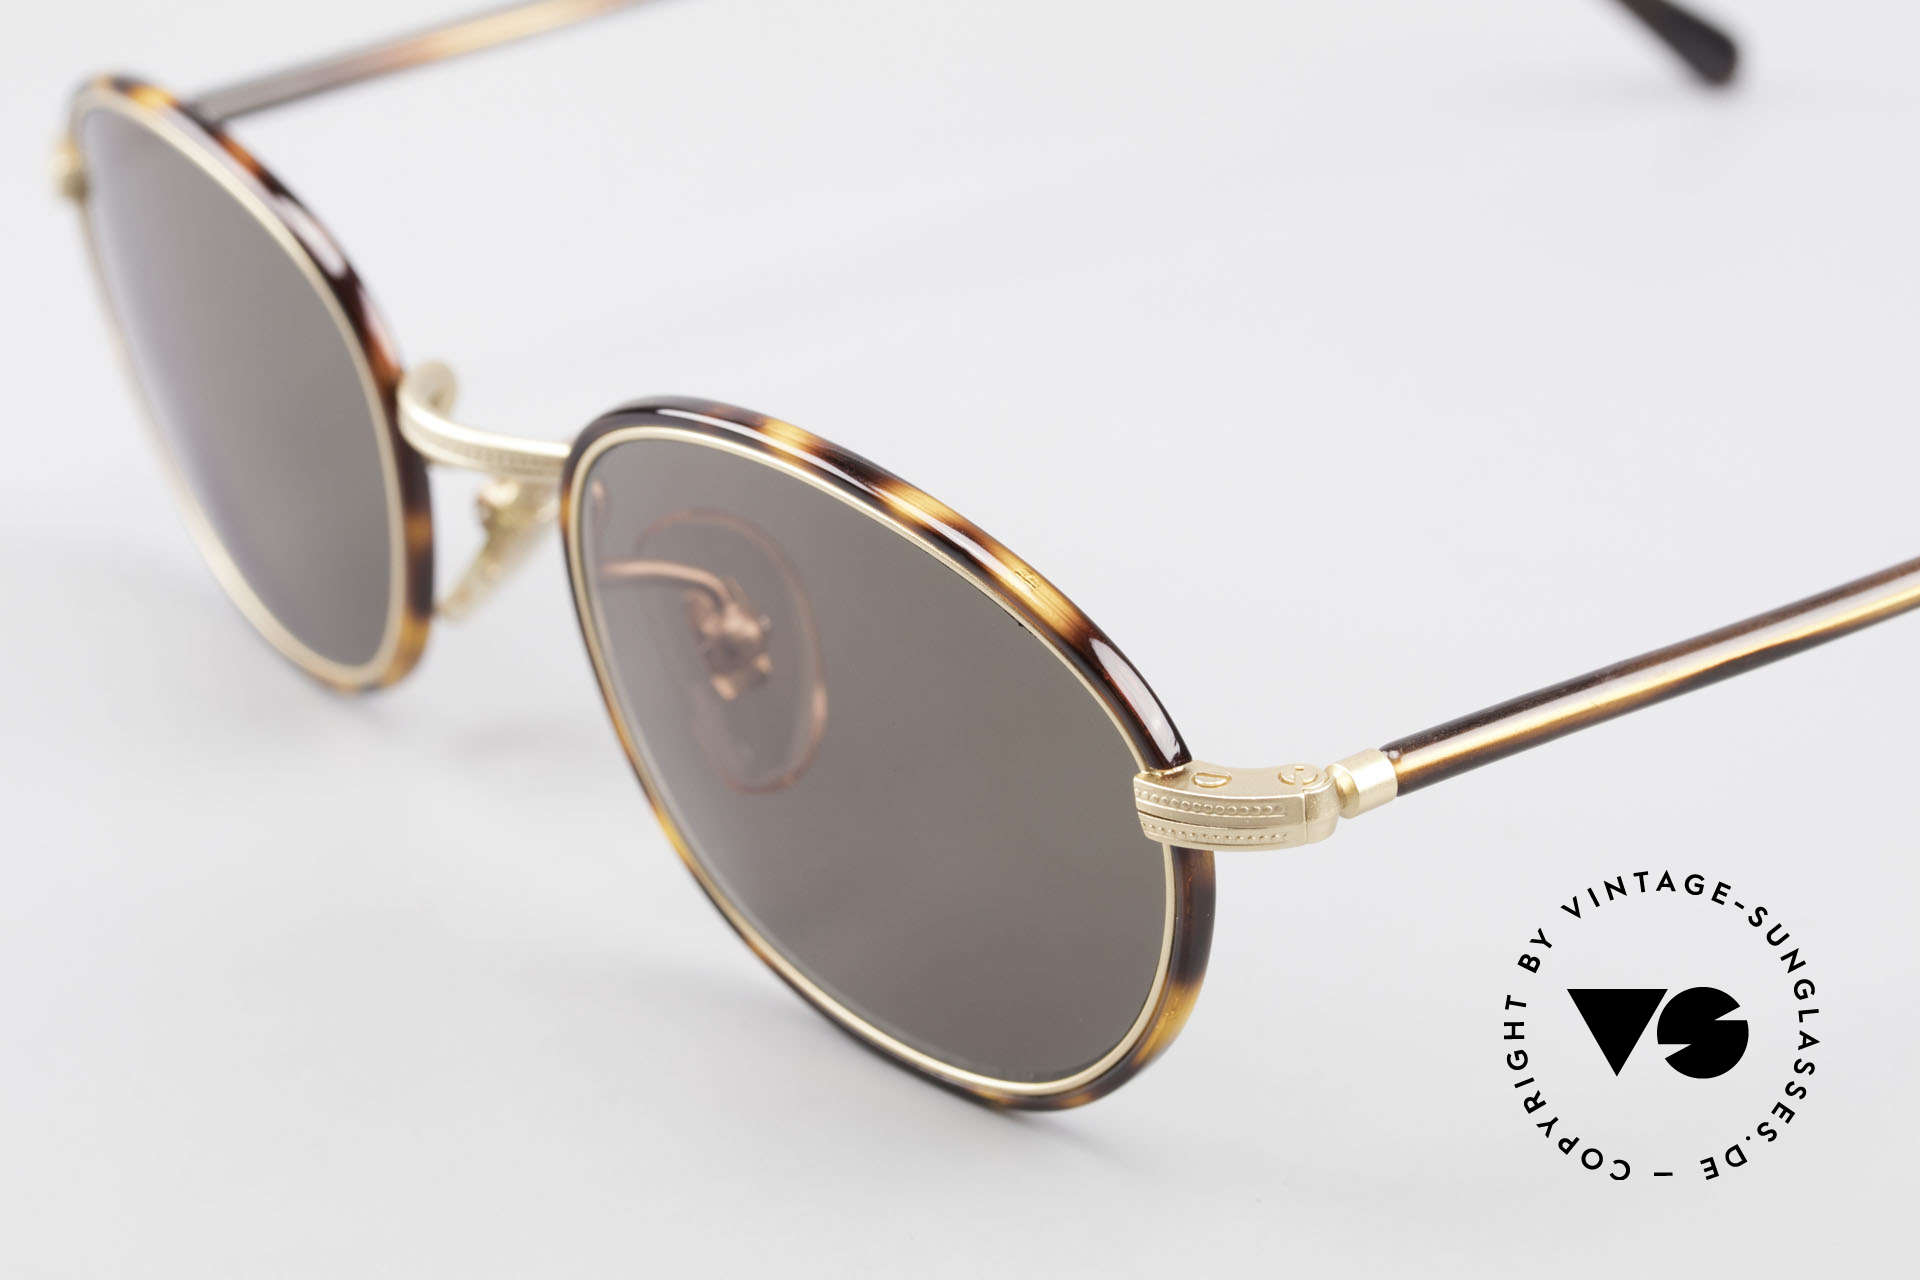 Cutler And Gross 0394 Classic Vintage Sunglasses 90s, very elegant combination of materials and classic colors, Made for Men and Women